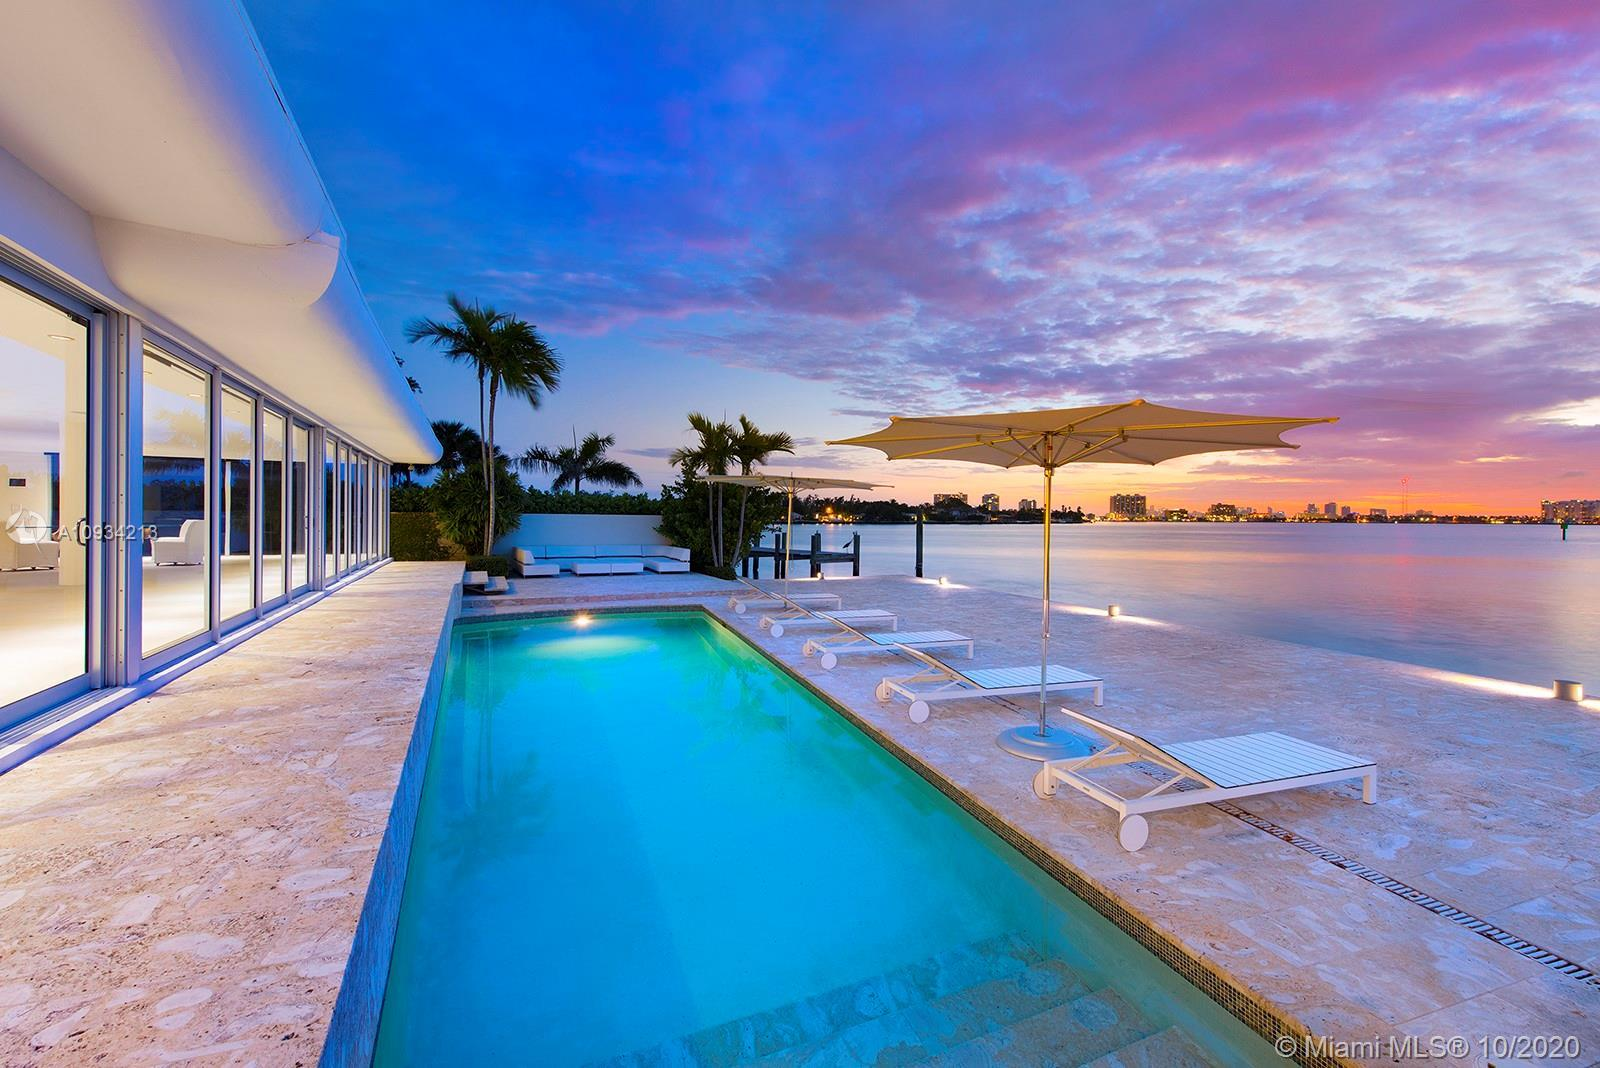 This home's lot has the best views on the island! Located at the tip of guard gated Biscayne Point i